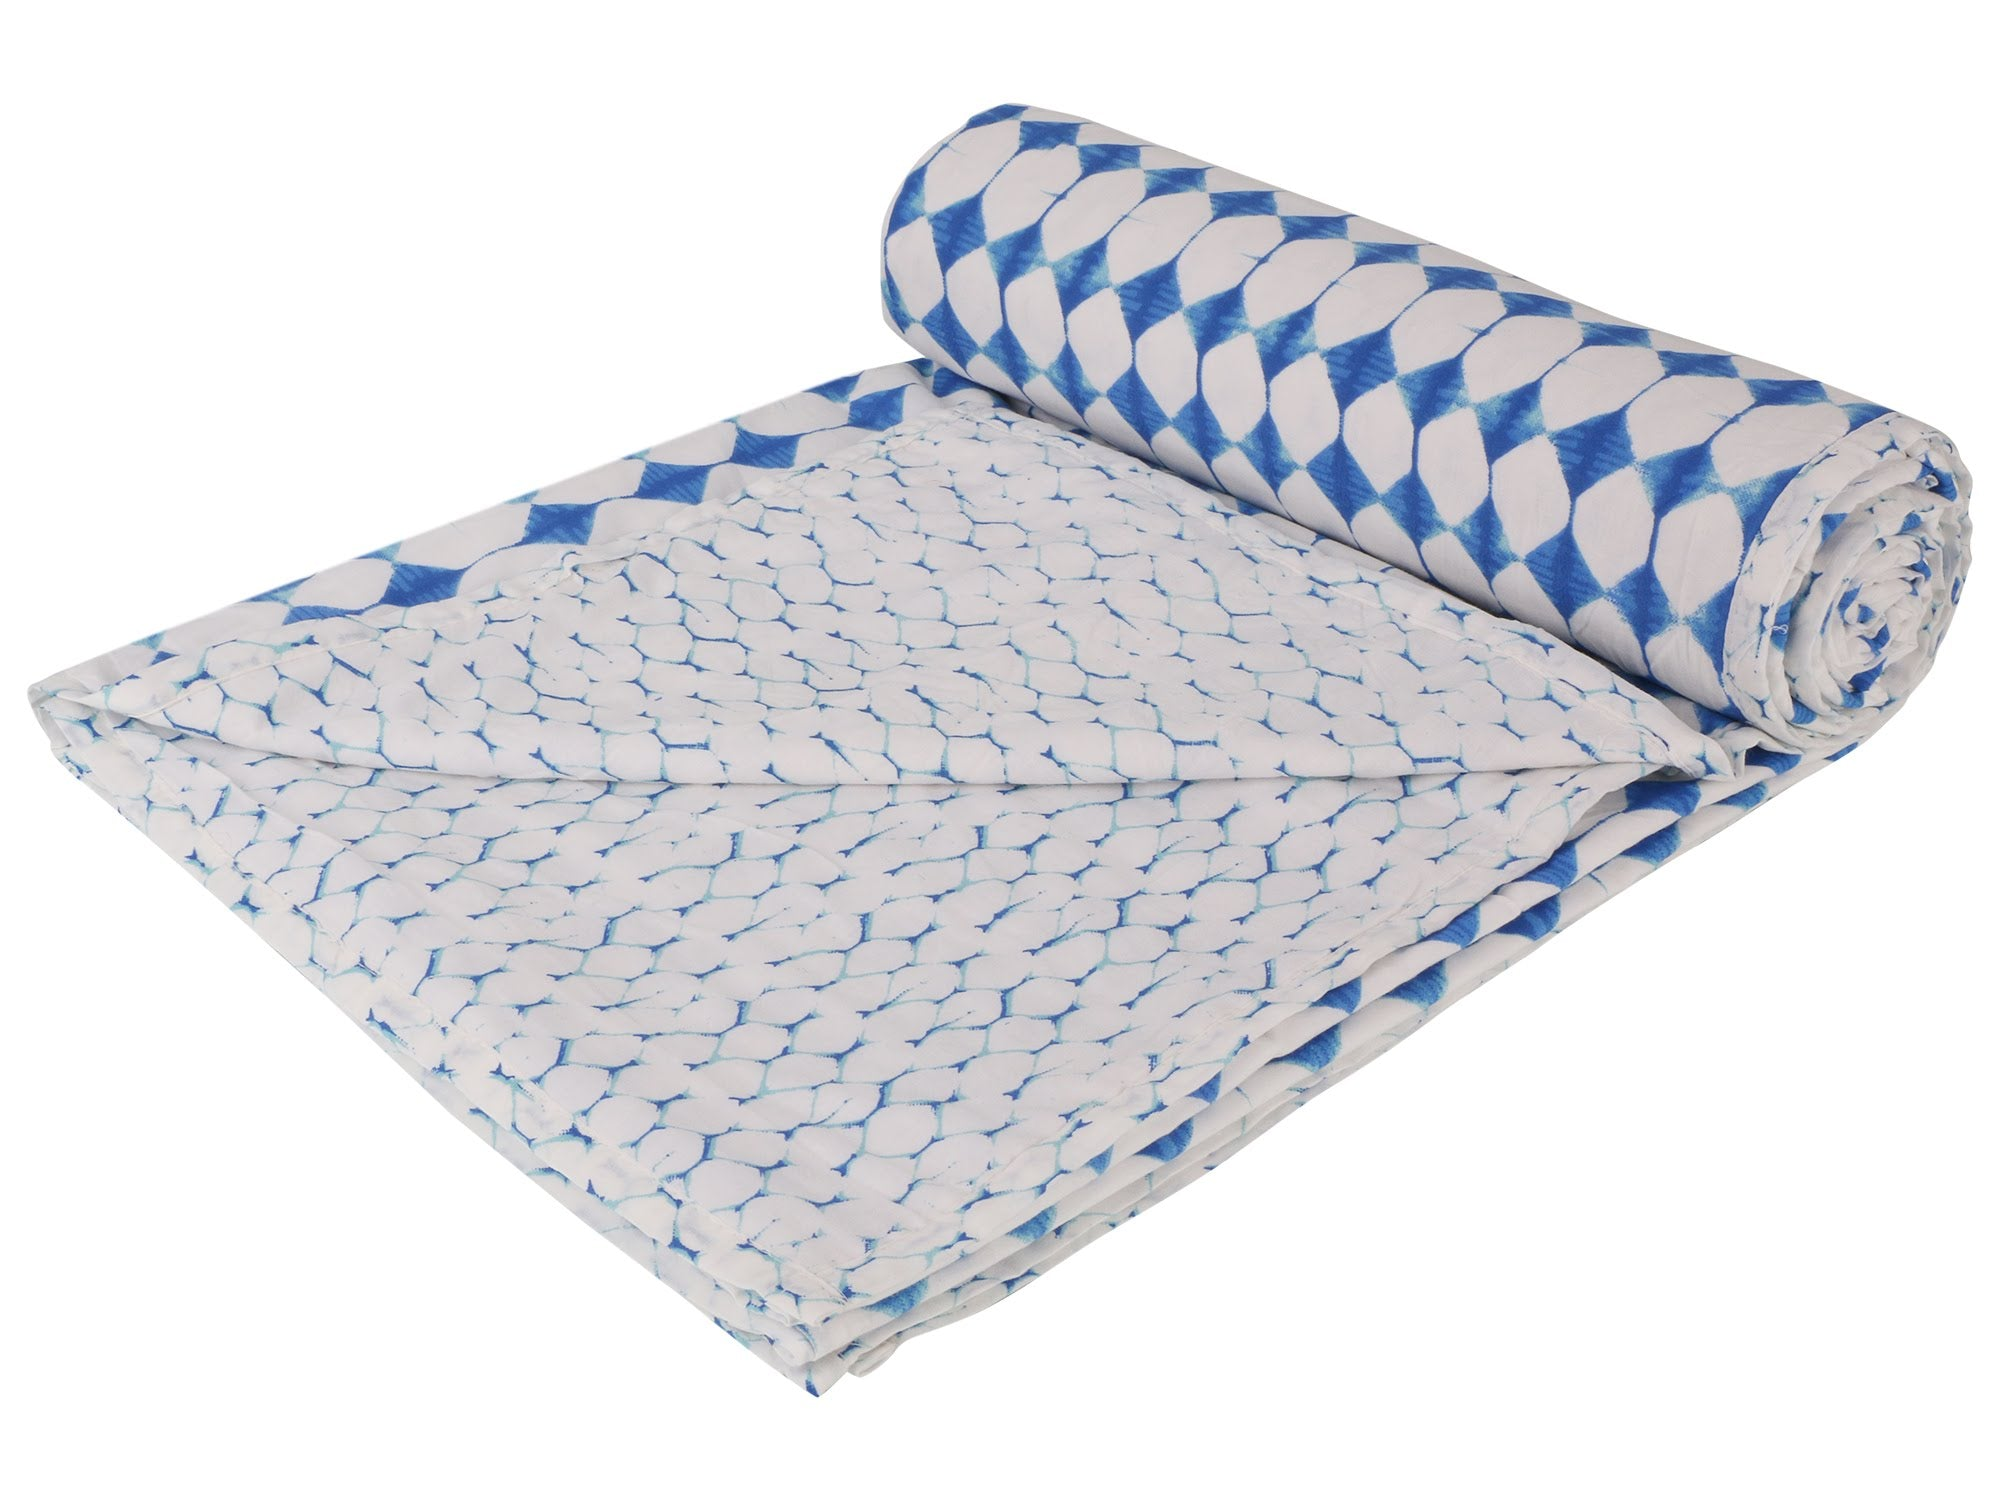 Indigo Reversible Cotton Single Dohar - 2 (90 x 58 inches)